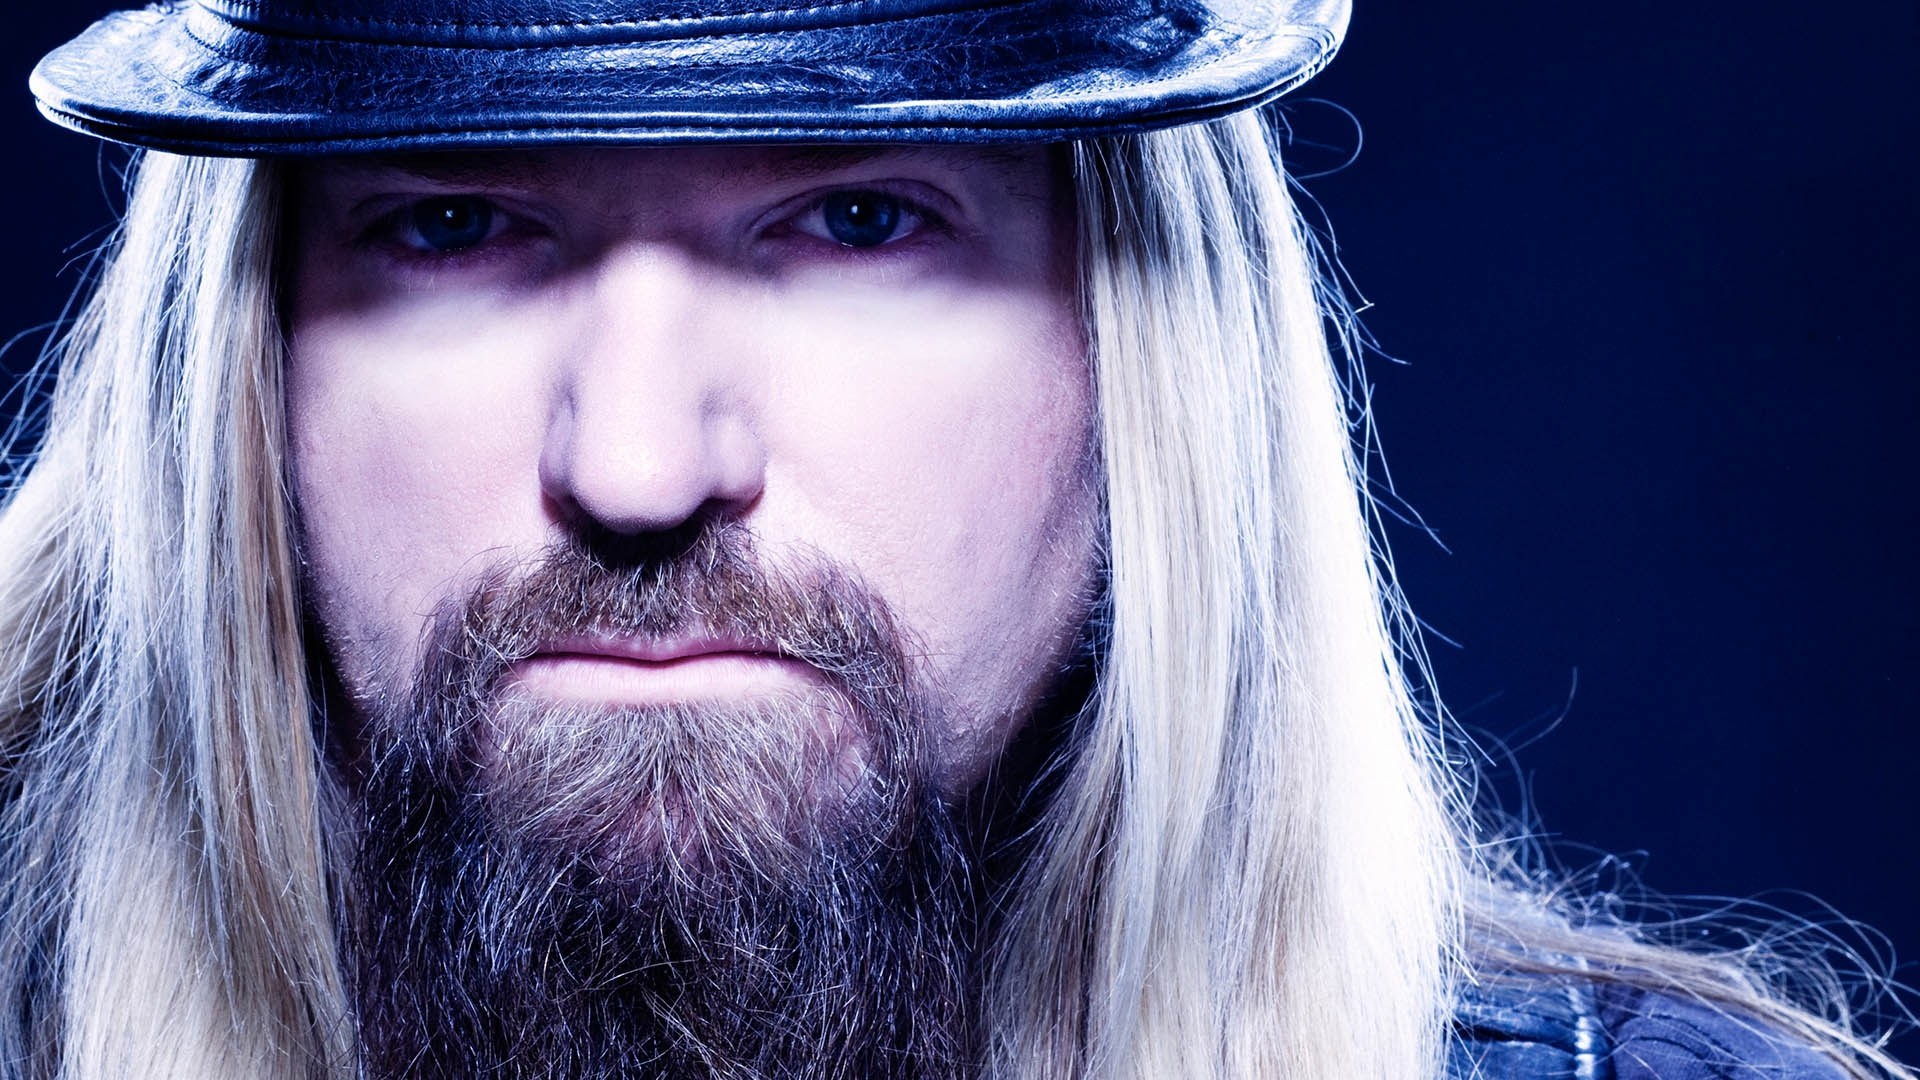 1920x1080  Wallpaper zakk wylde, face, hair, beard, hat